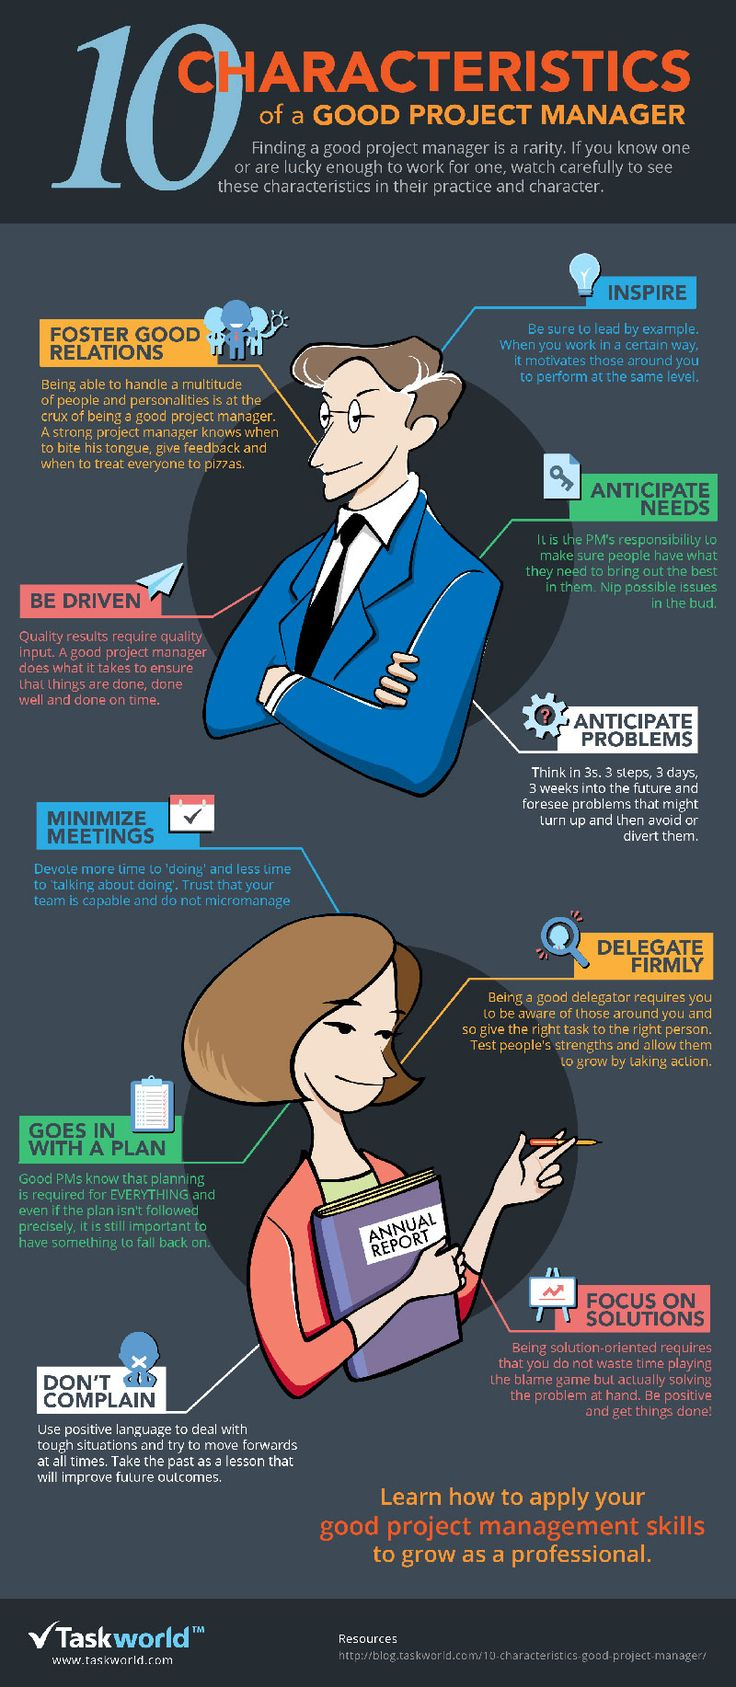 10 Characteristics of a good project manager #projectmanagement #PM